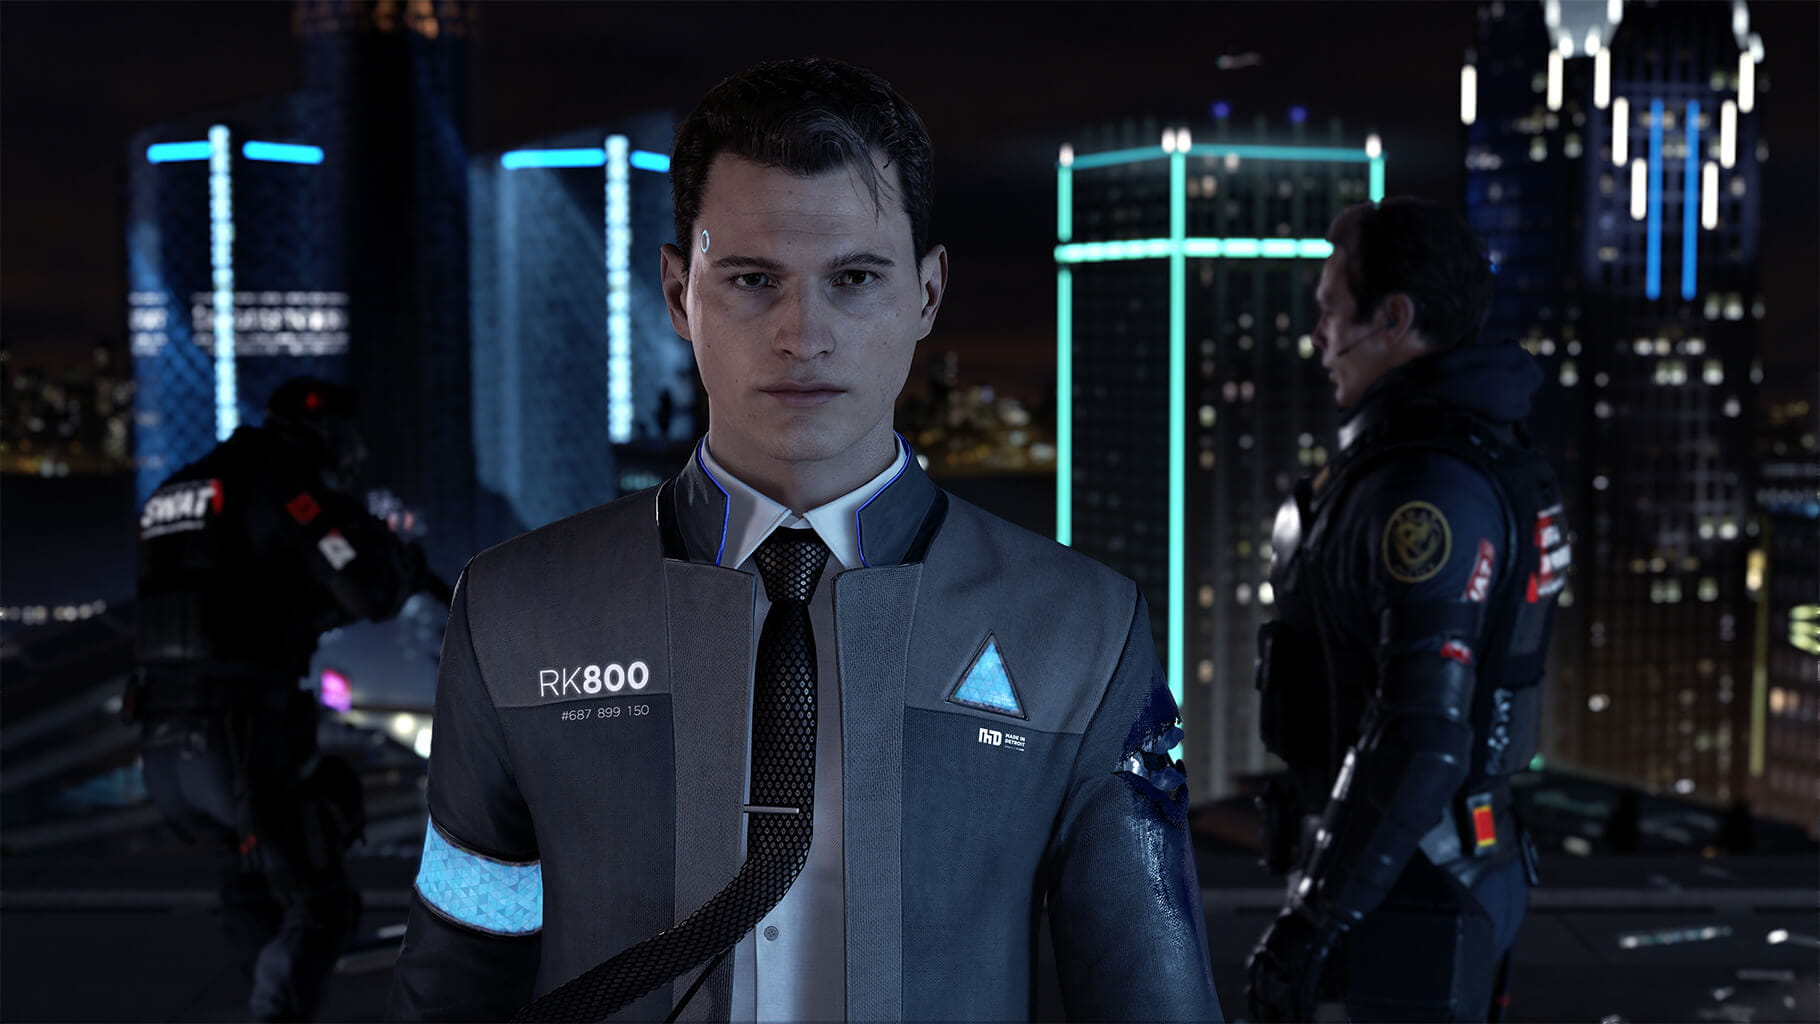 Connor Gallery Image